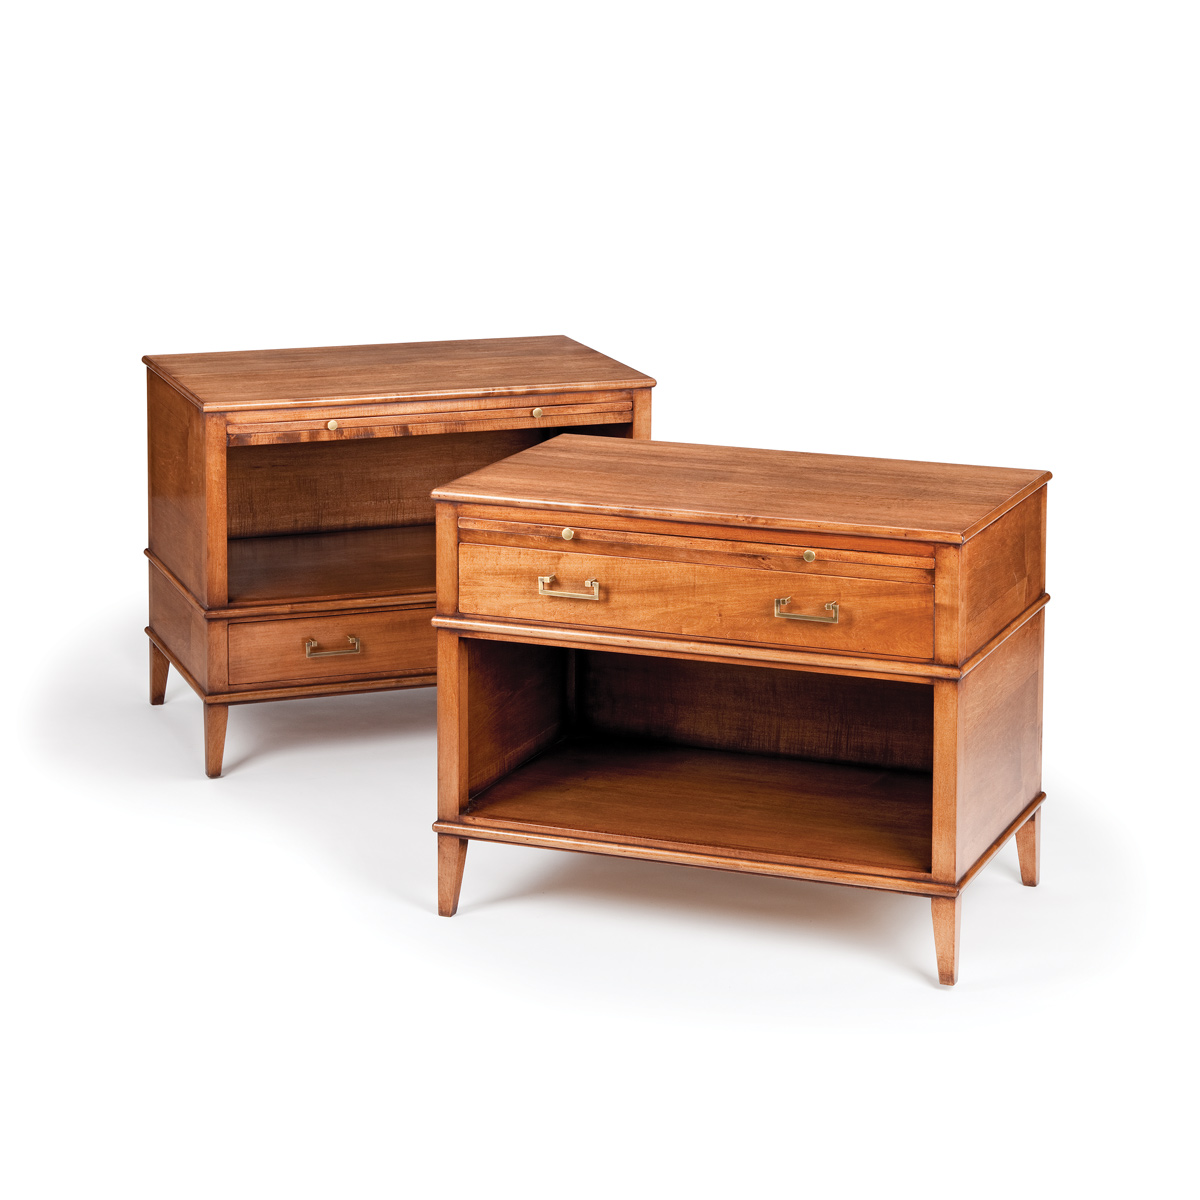 Thomas-Bedside-Table_For-Web.jpg